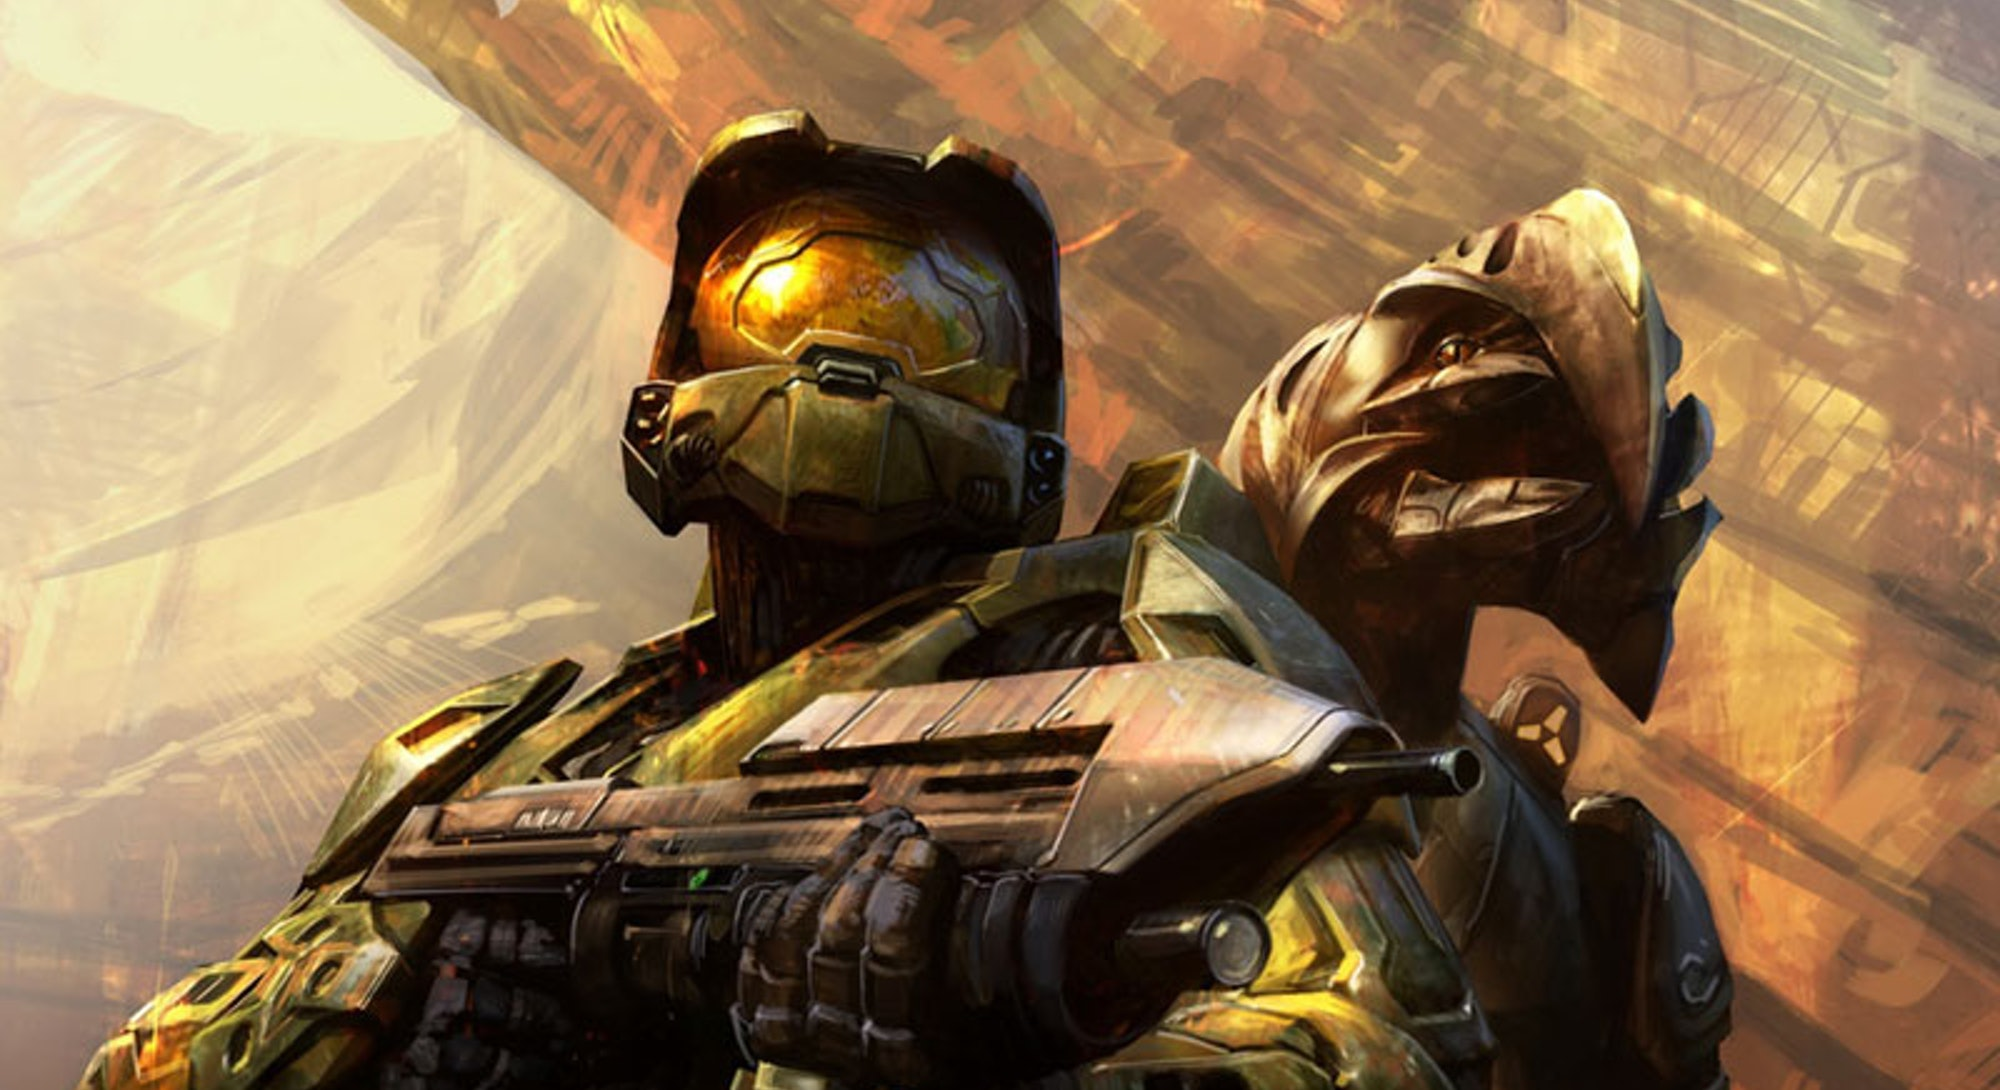 Artwork depicting the Arbiter and Master Chief in a Halo 3 promotion